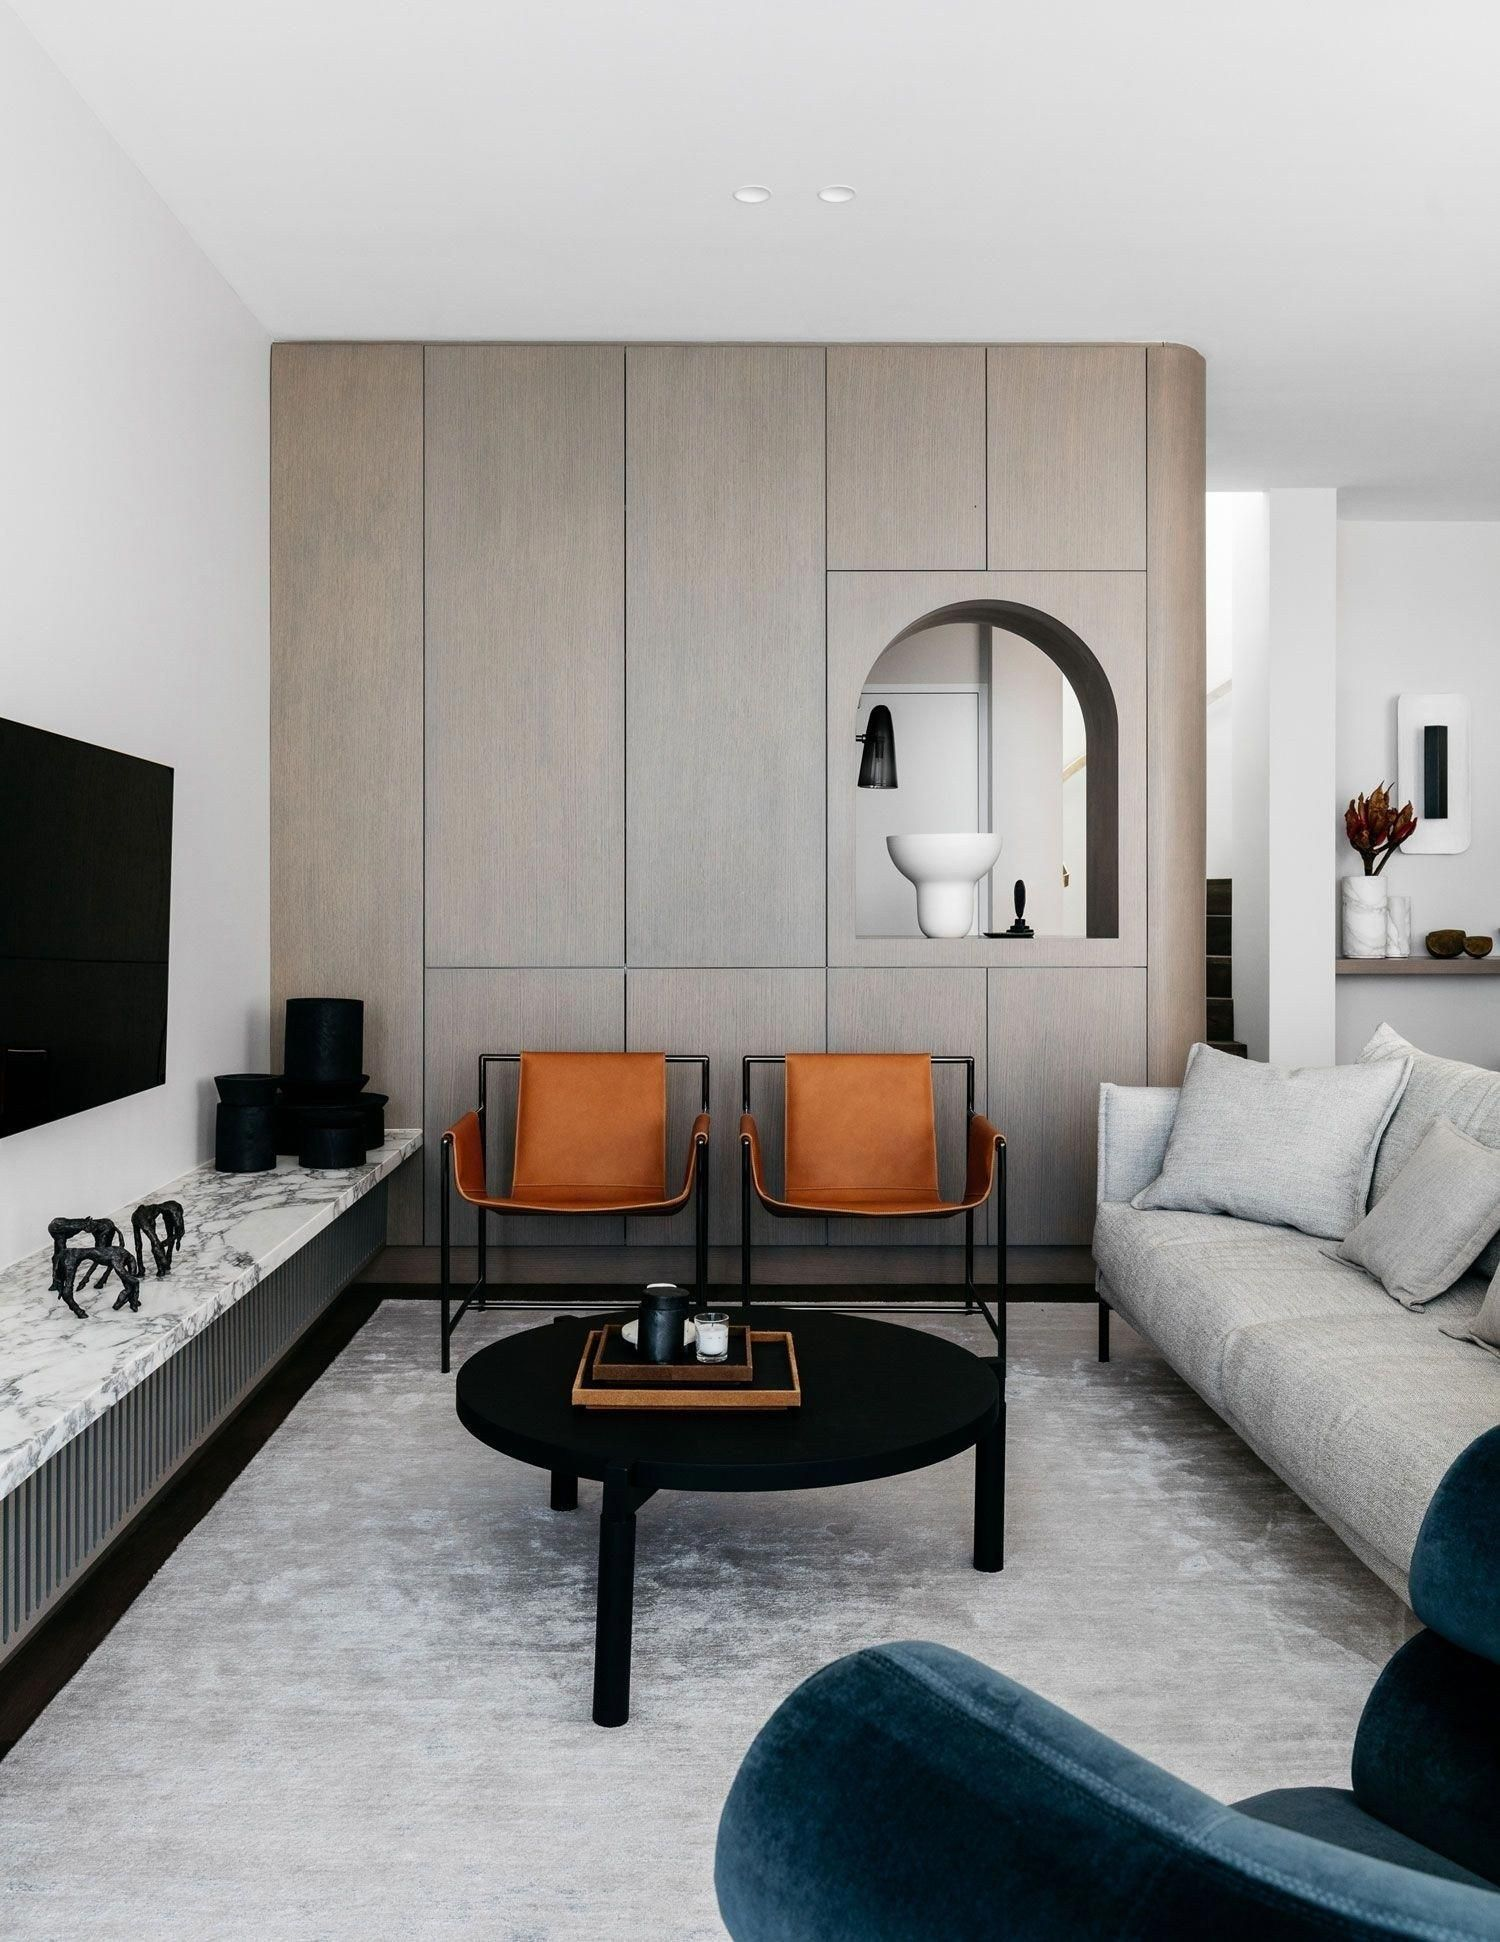 39 Affordable Living Room Design And Decor Ideas For You Now